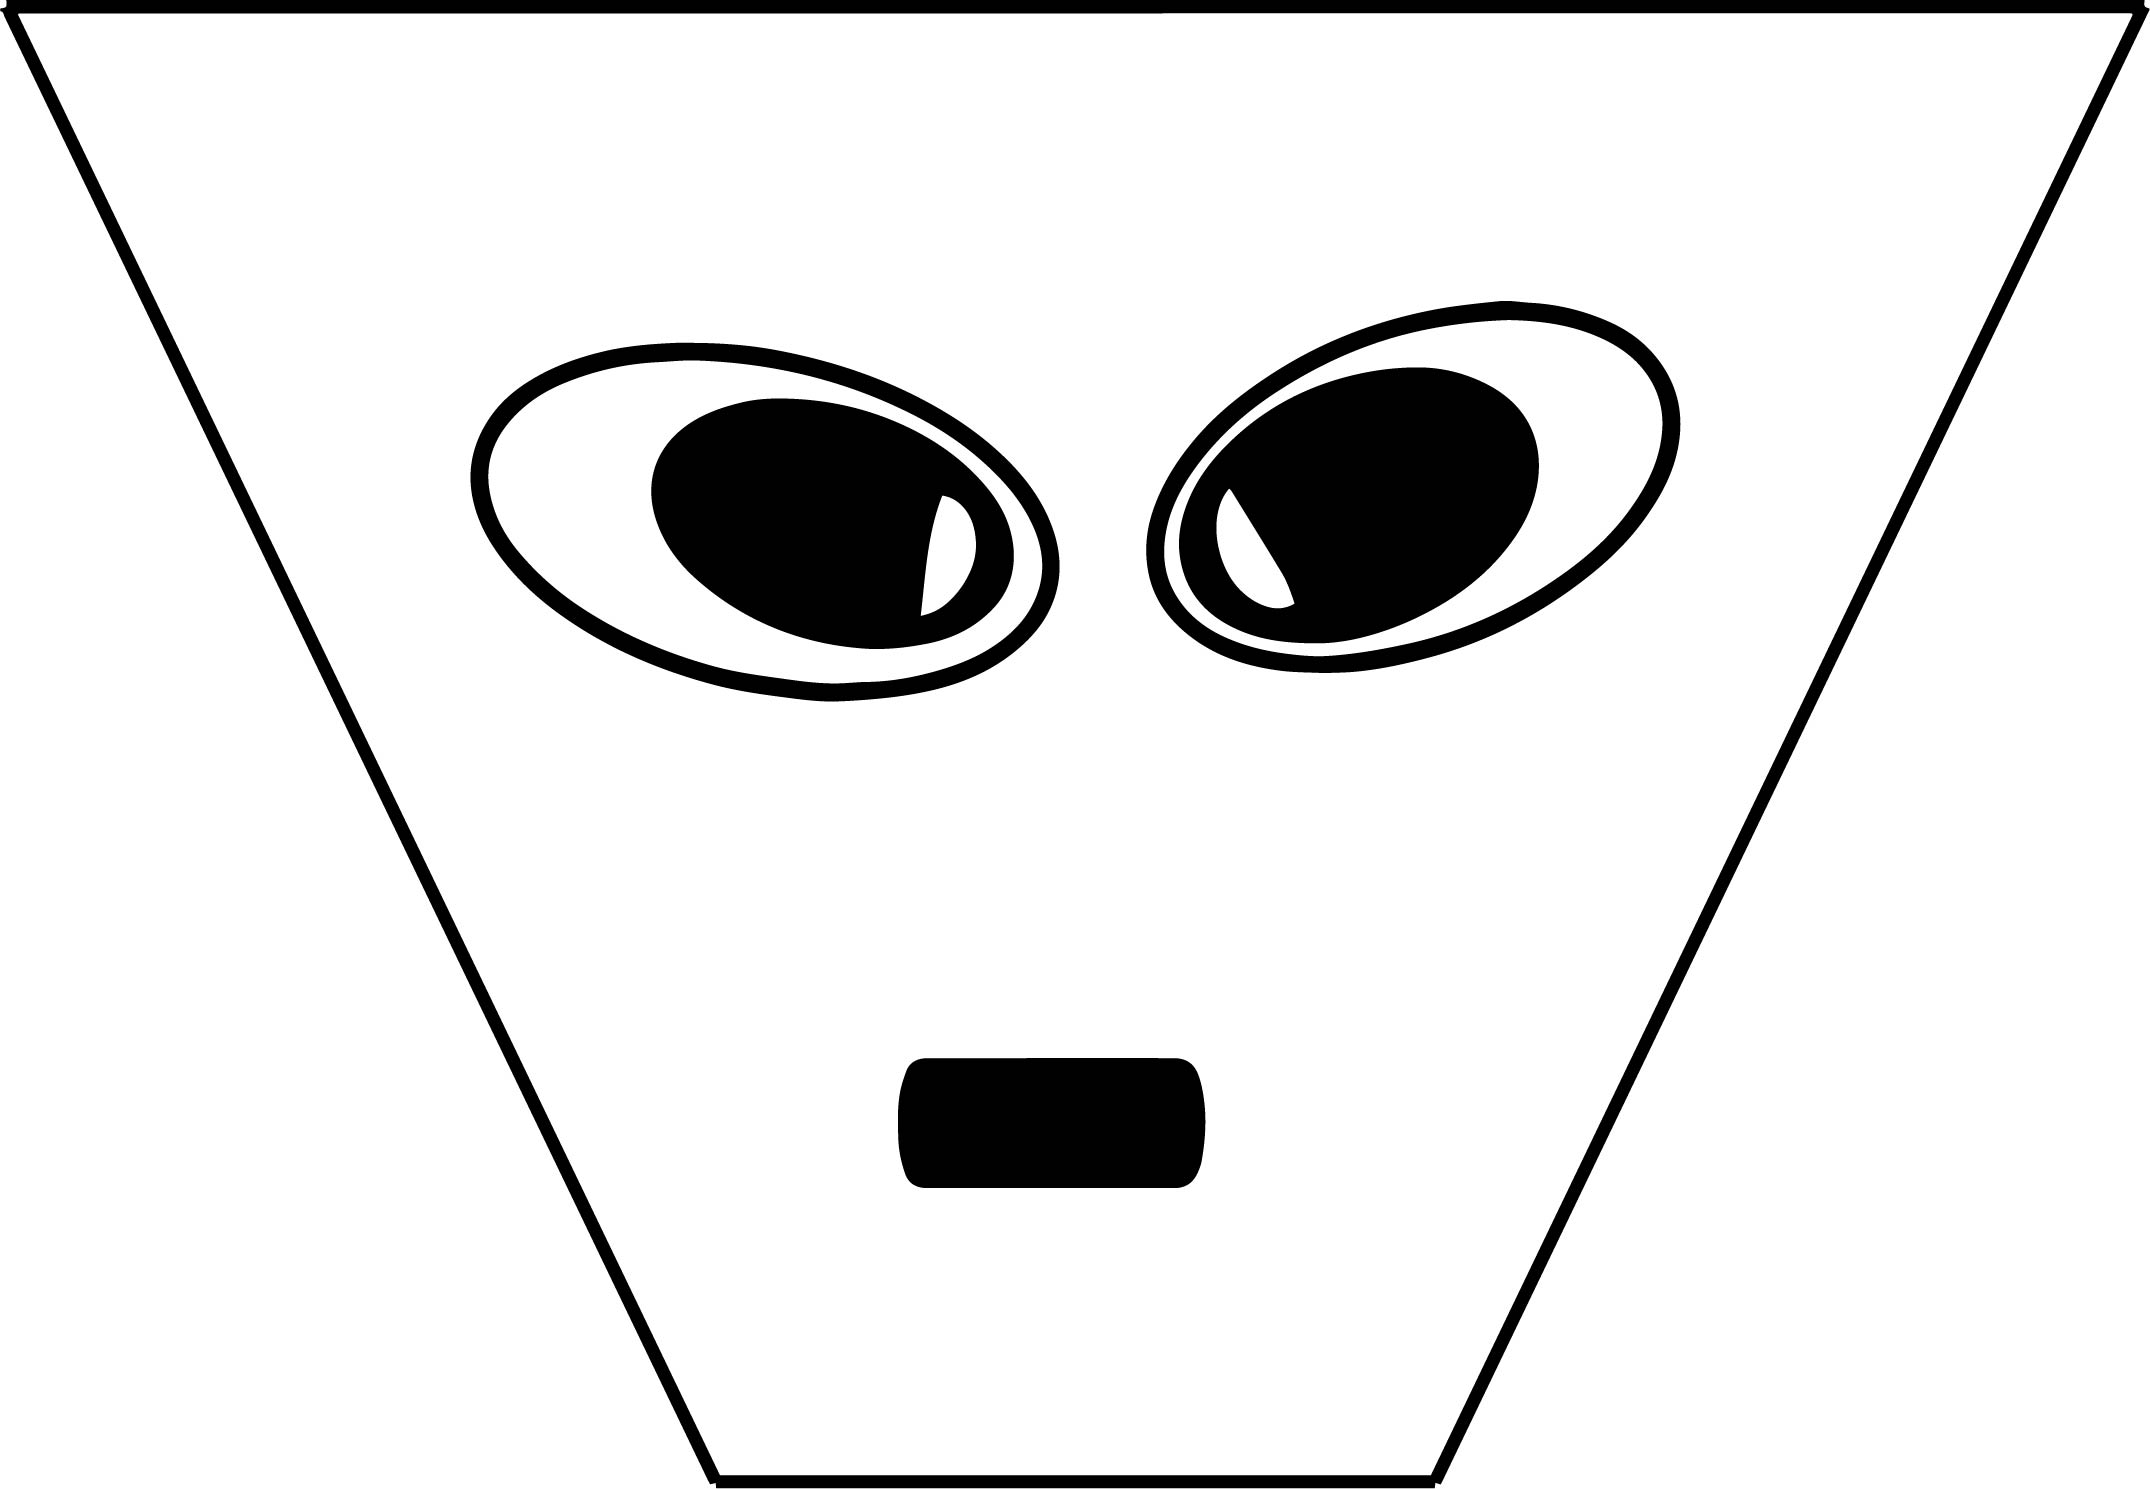 Free 3d Extra Terrestrial Smiley Face Illustration Coloring Page